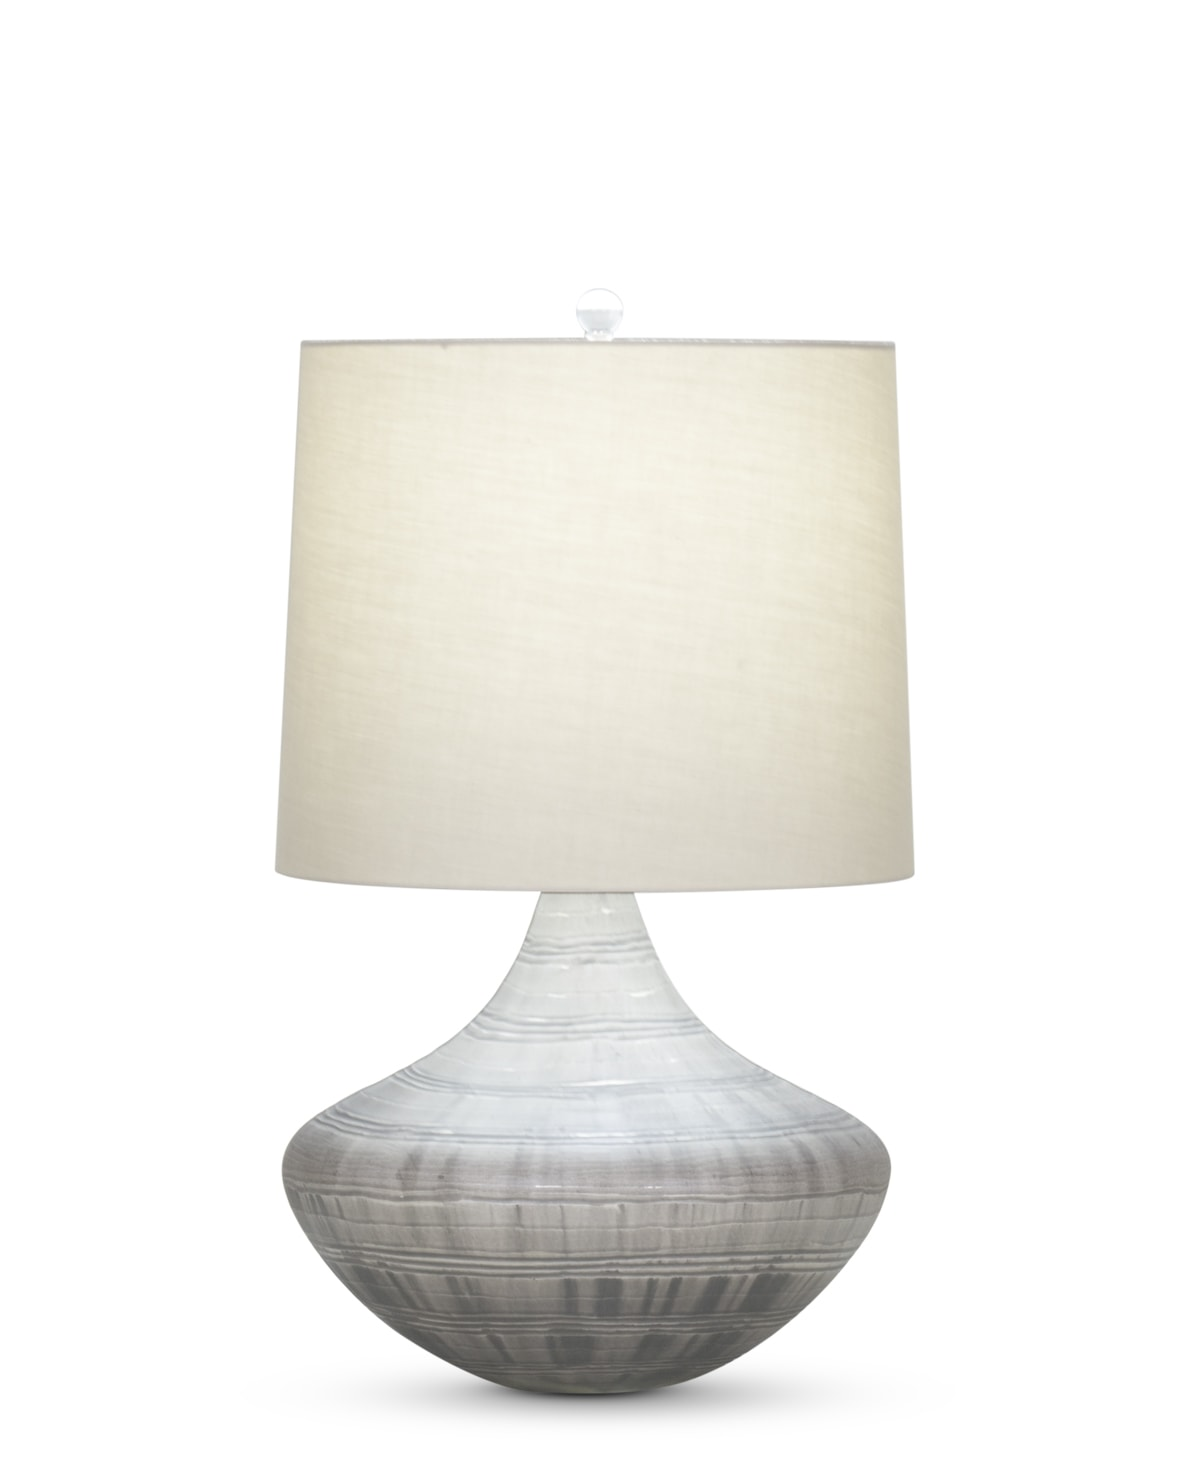 FlowDecor Jackson Table Lamp in mouth-blown glass with grey carved finish and beige cotton tapered drum shade (# 3954)